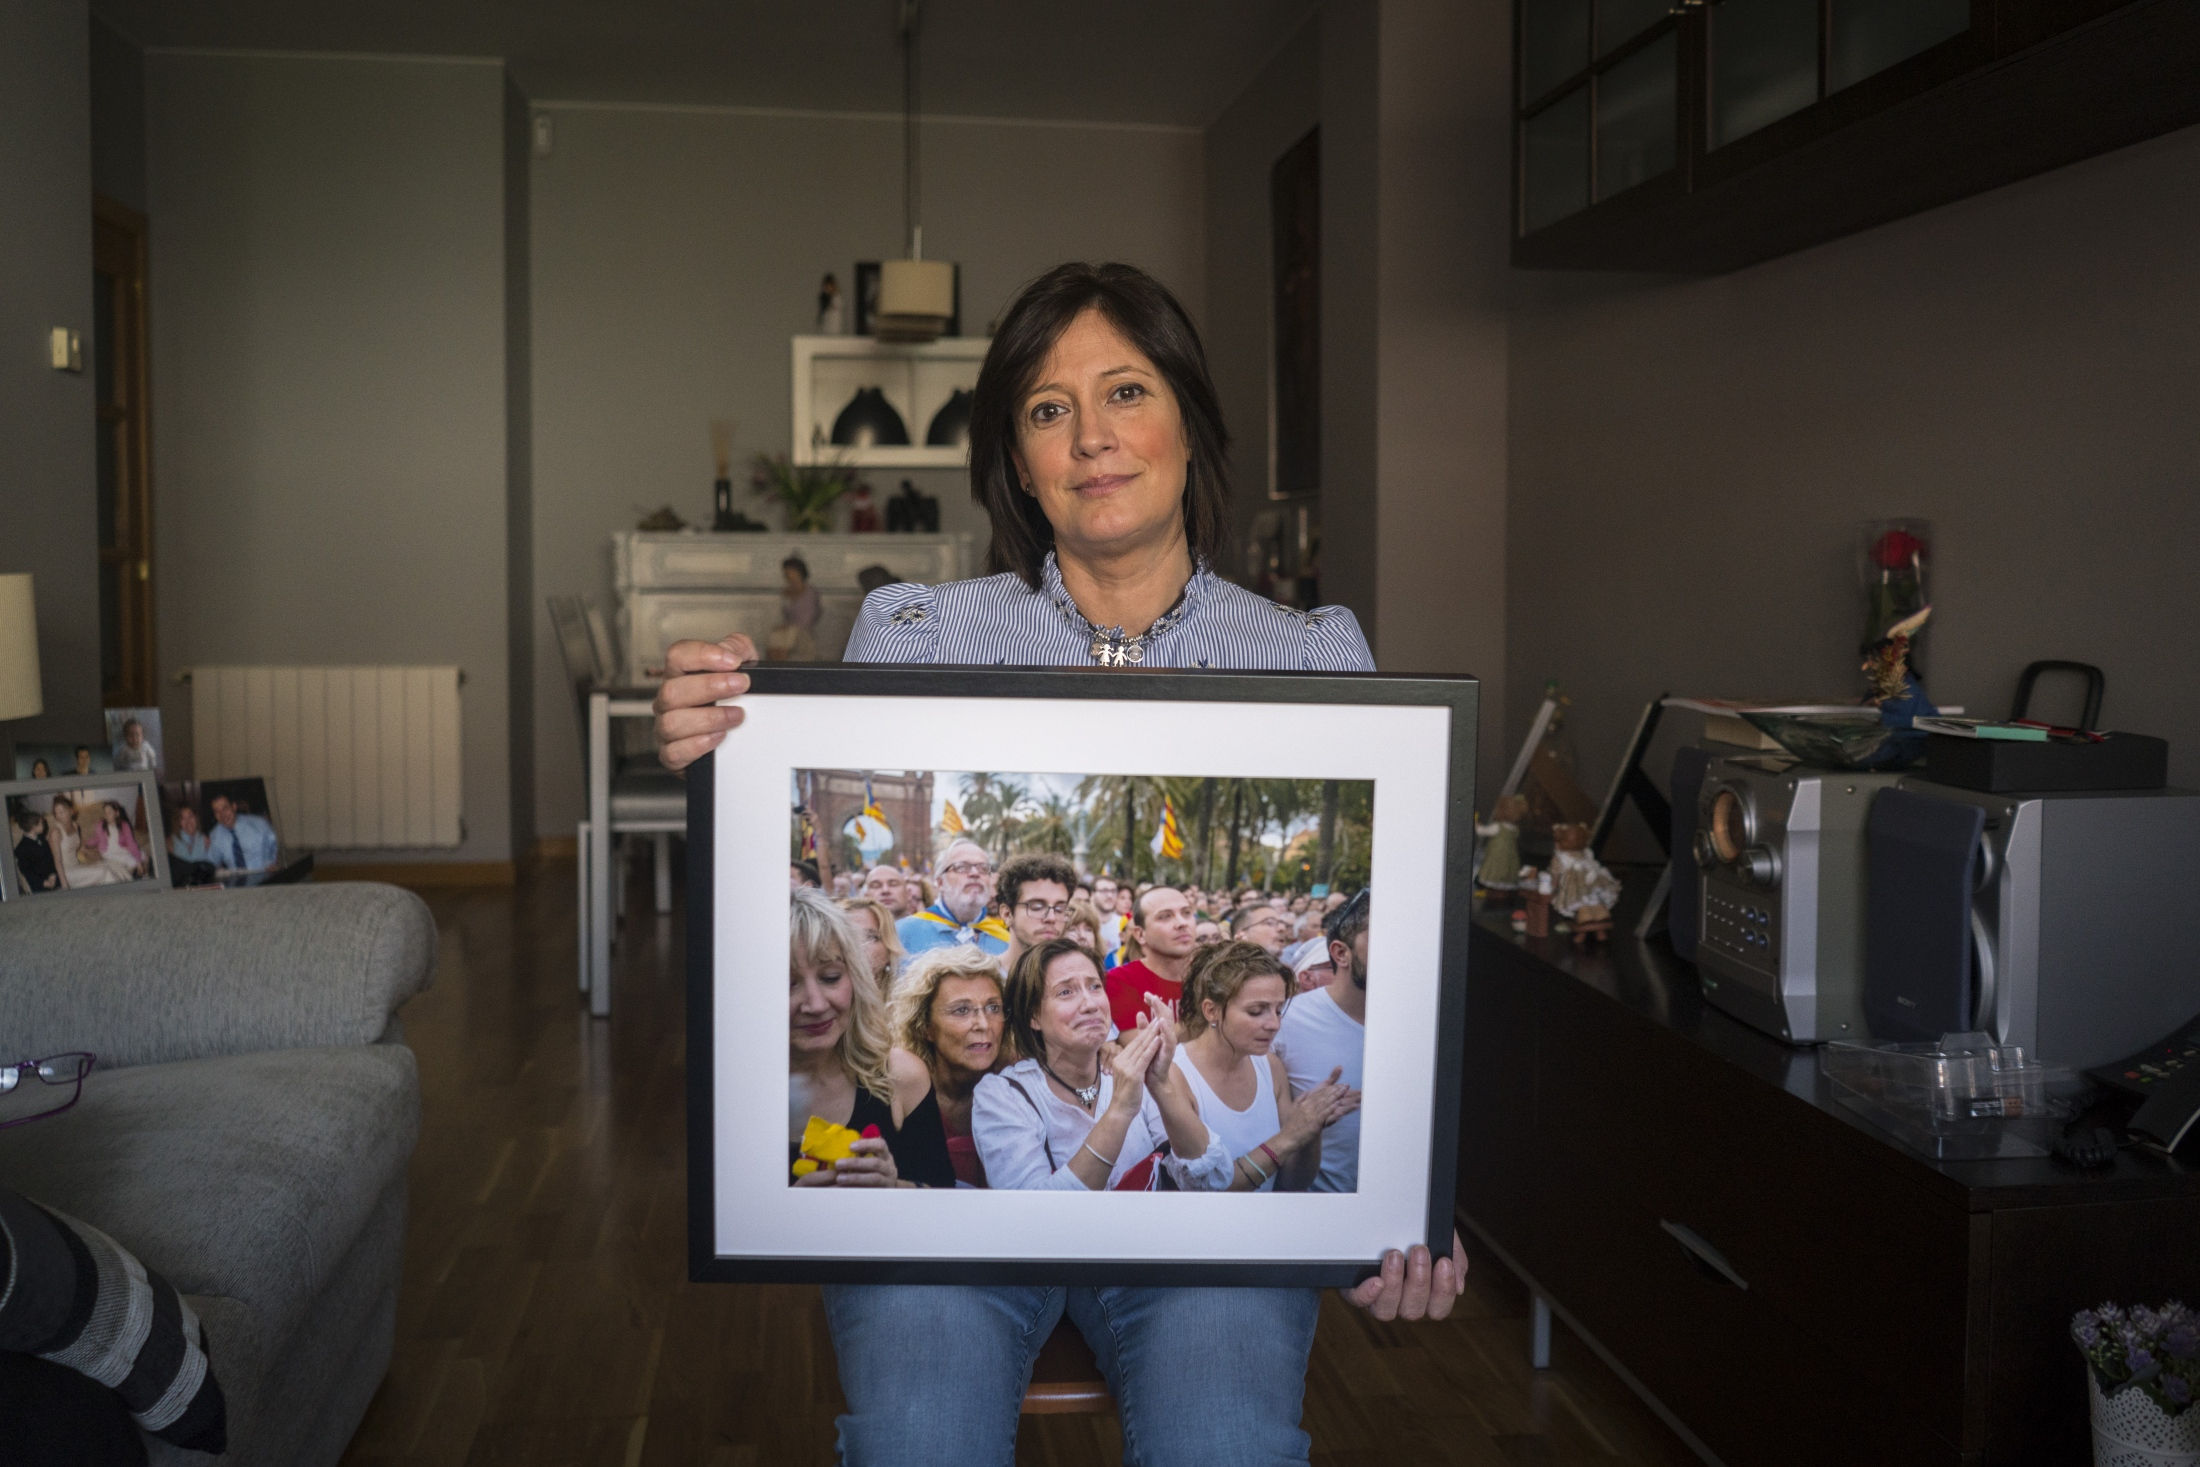 When presented to her, the photograph triggers an emotional response as Muntsa recalls her continued support for the movement since she was young. Muntsa is deeply committed to the Catalan independence movement and has an overwhelming hope for its future.